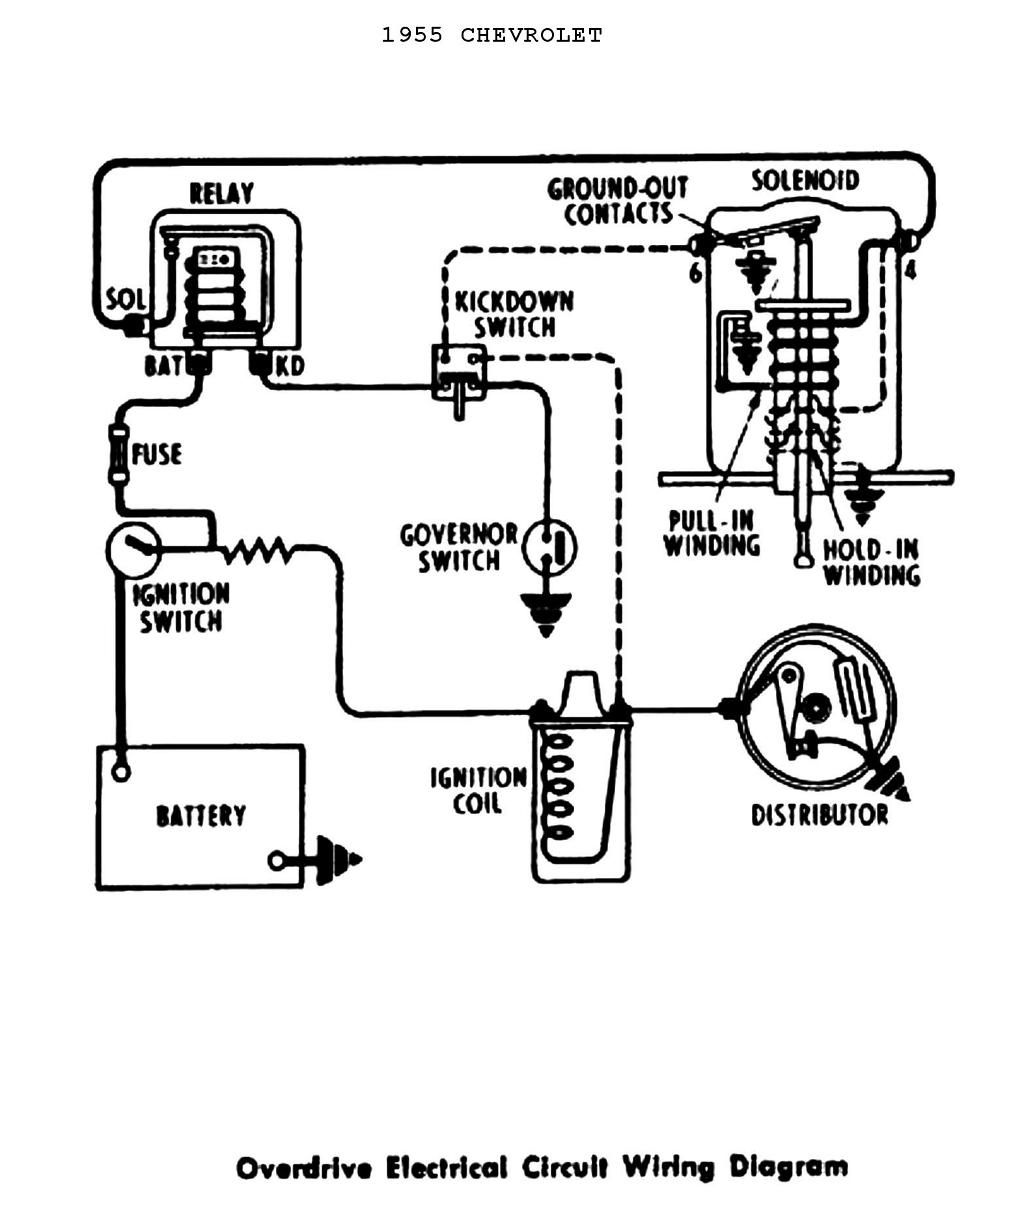 Amazing Chevy Wiring Harness Diagram Kentucky in 2021